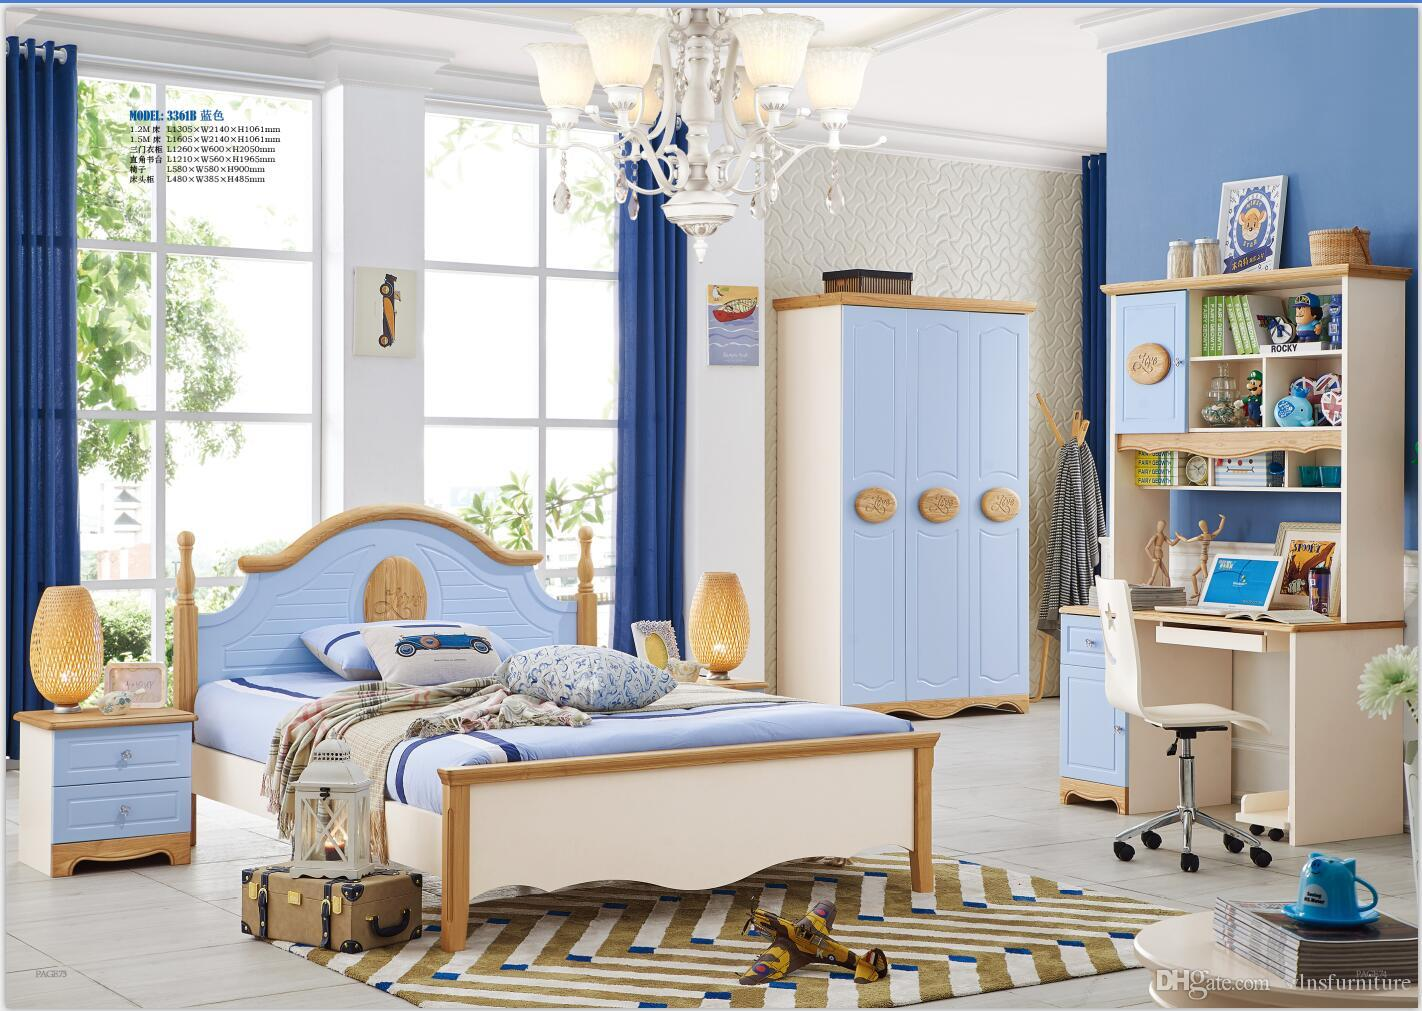 2019 Modern Bedroom Furniture Set Solid Wood Healthy Children Bedroom  Furniture Set Bed Wardrobe Desk Bedside Table Chair From Wlnsfurniture,  $1579.9 ...